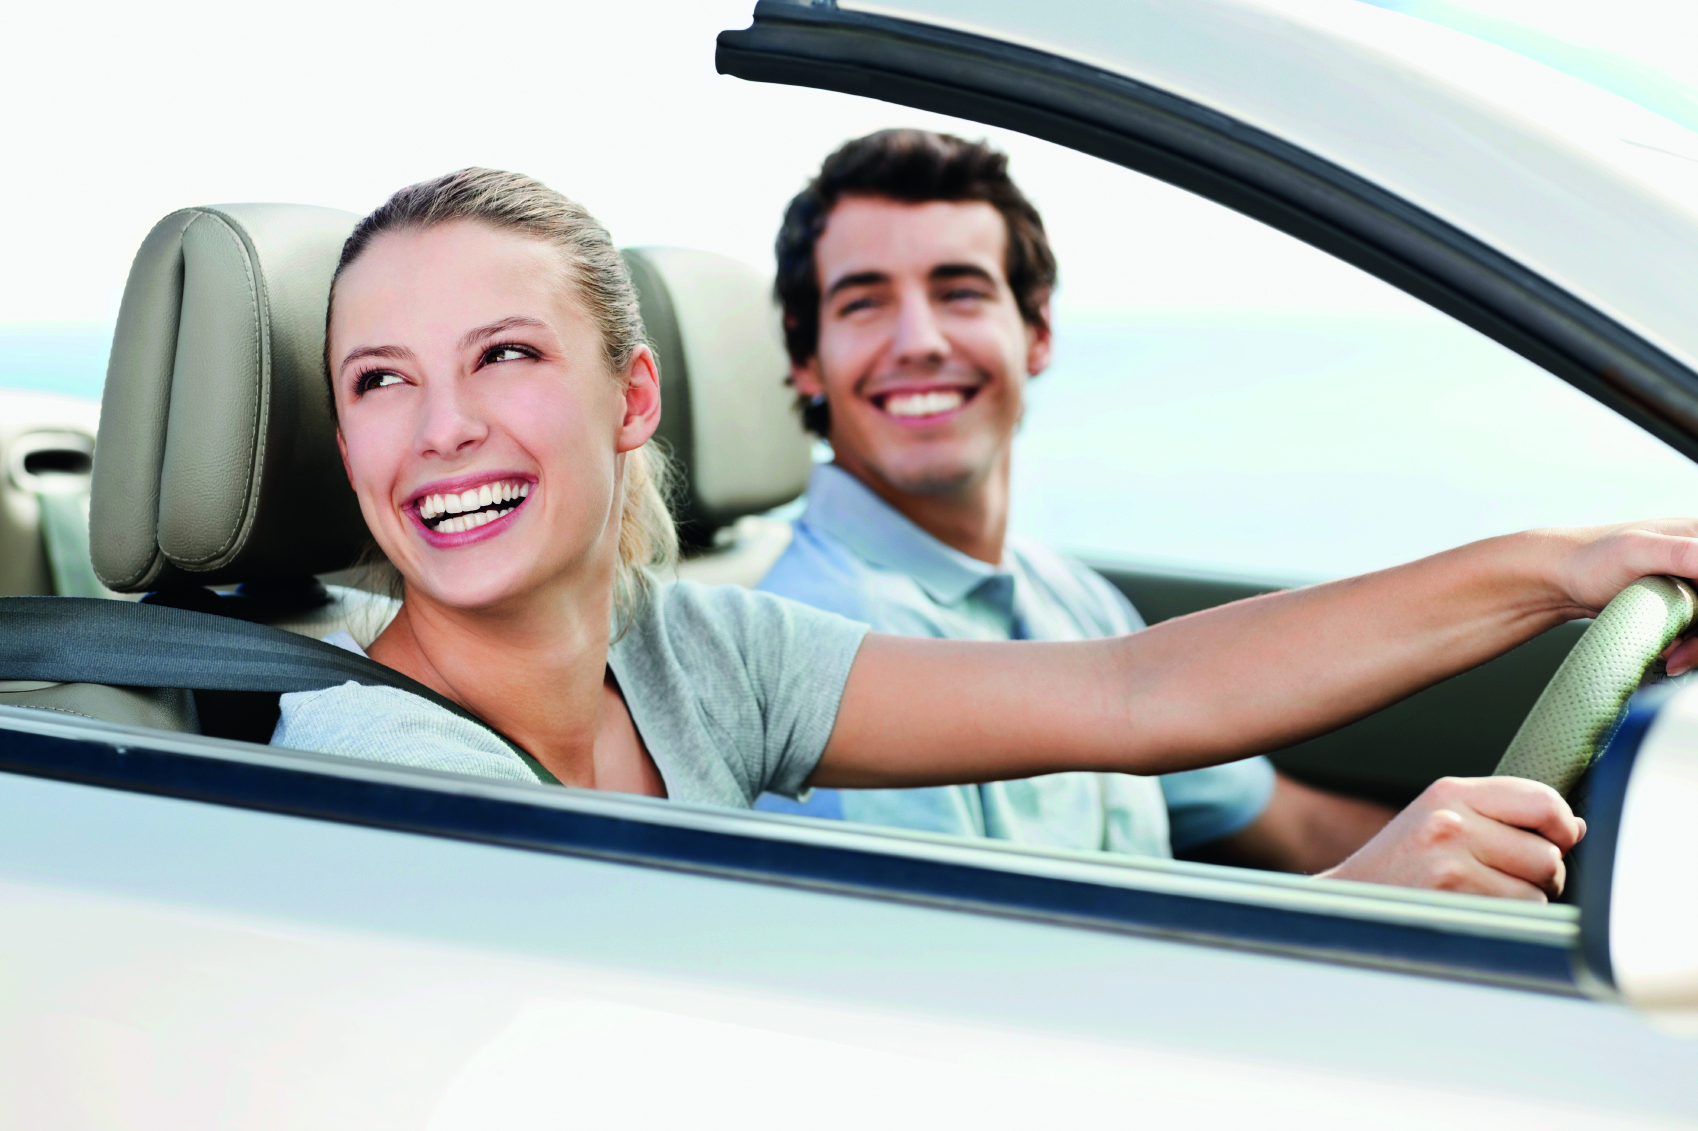 owning a car benefits and drawbacks If you're considering buying a new automobile, compare the pros and cons of diesel-powered vehicles consider these facts to help you decide between a diesel-powered engine and a gasoline-powered one: pro: diesels get great mileage.